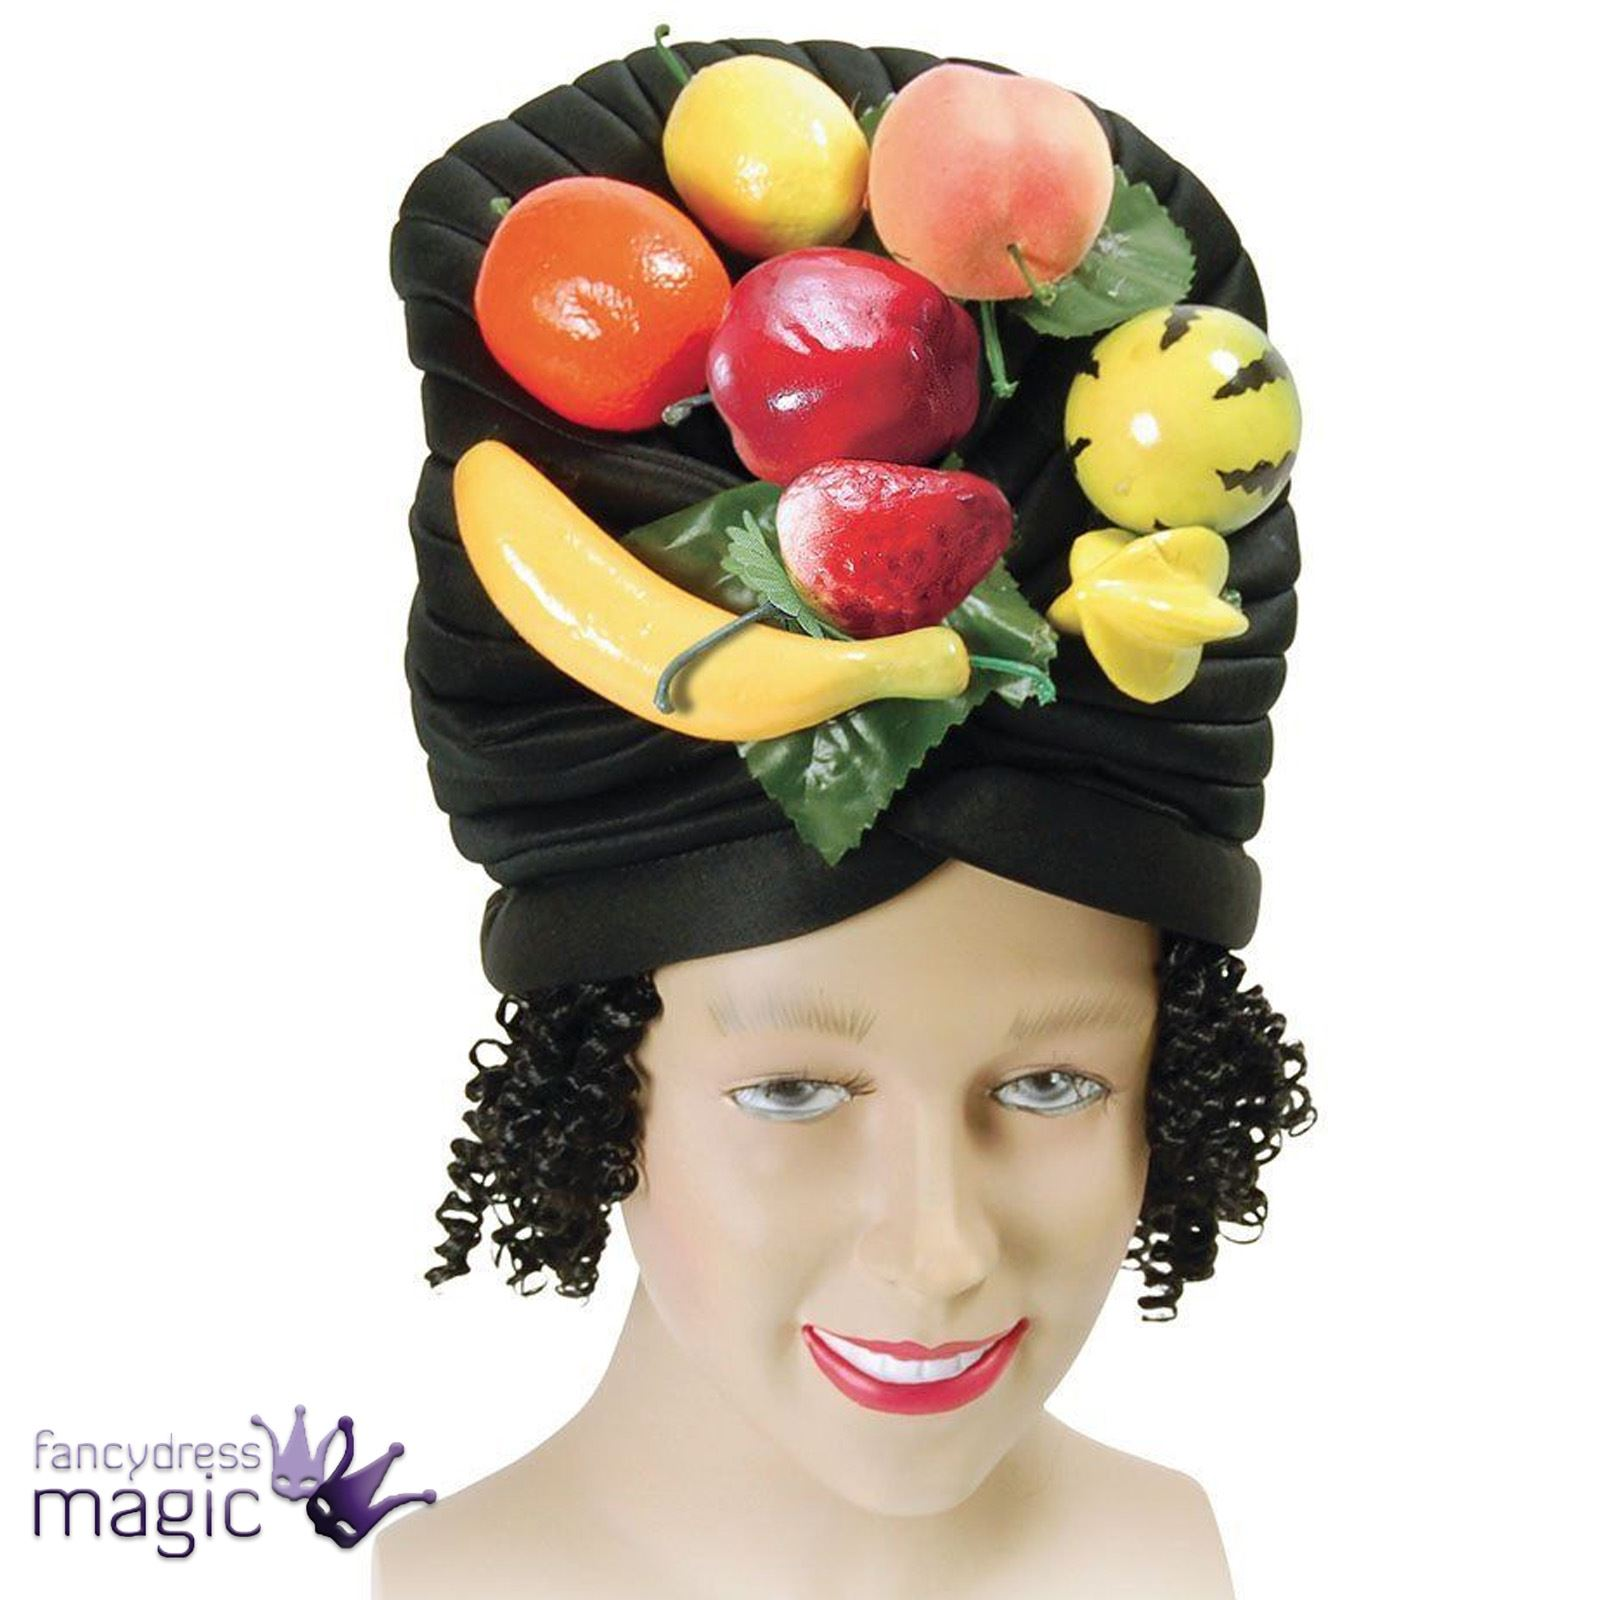 3bf6321c47b Carmen Miranda Fruit Hat Wig Hair Fancy Dress Costume Caribbean Brazil  Carnival